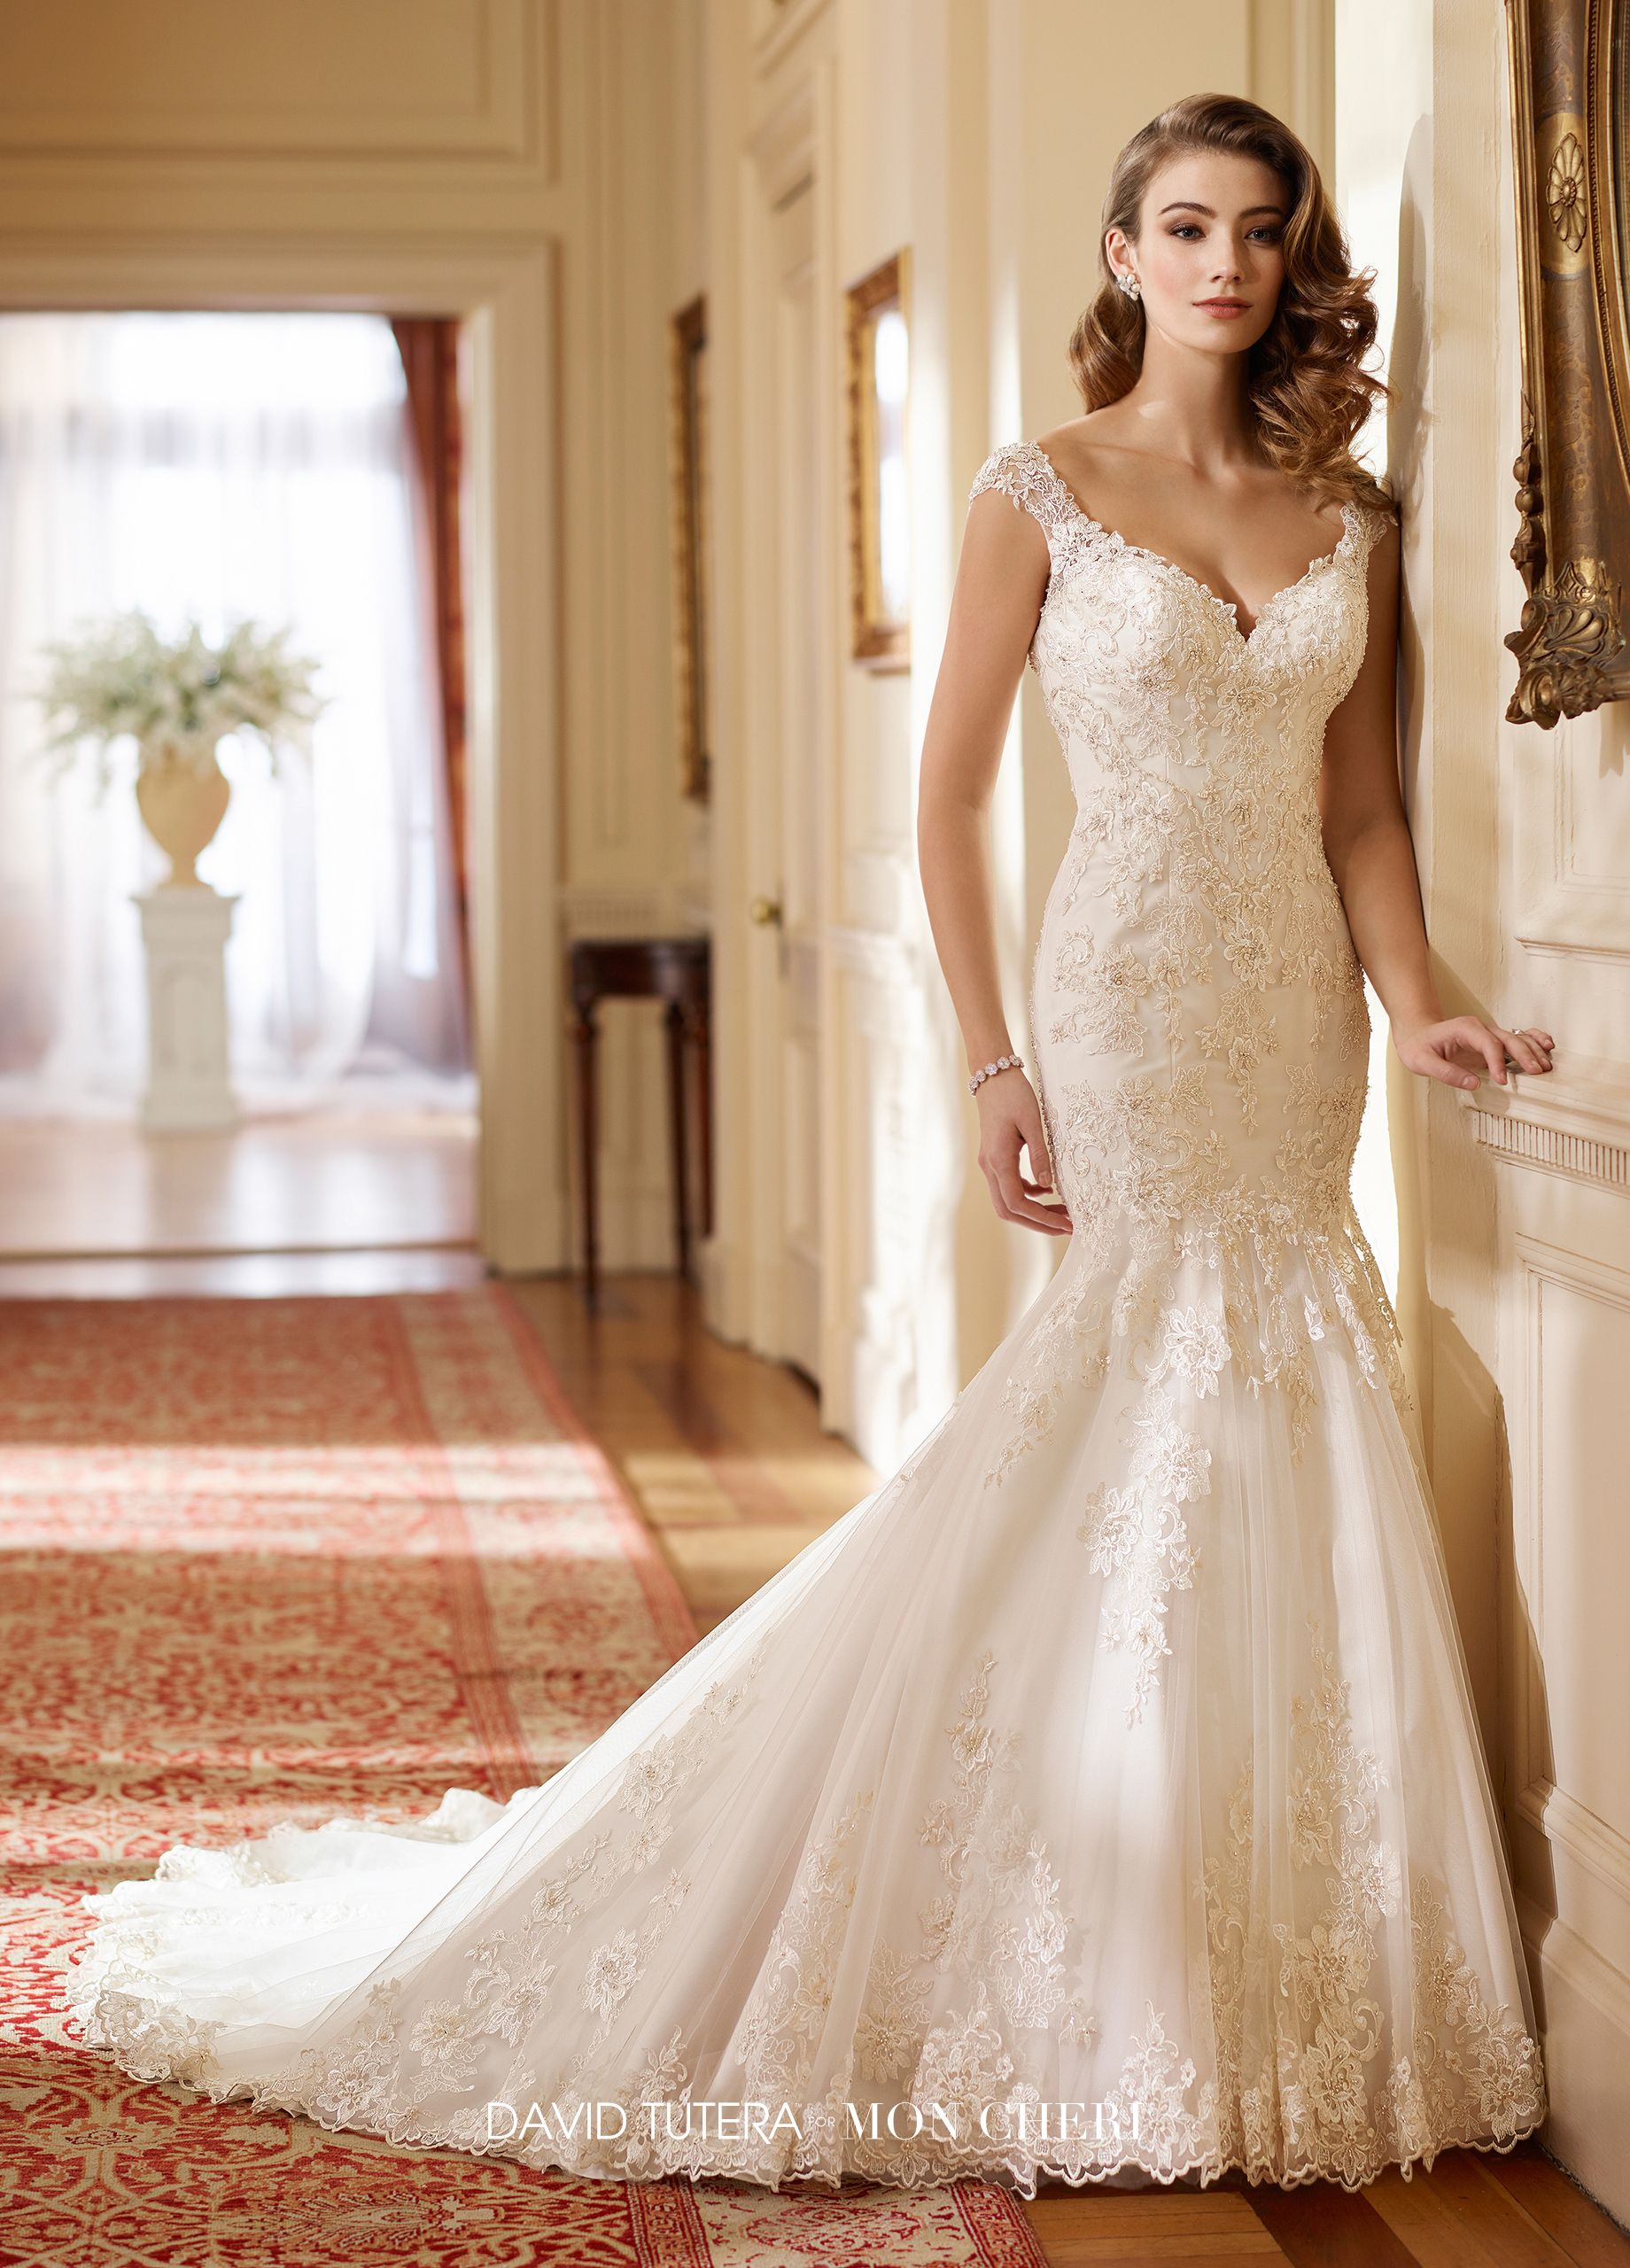 c6312b36bedf ... Wedding Dresses. 217219 Hazel - Tulle with Schiffli and Venise lace  appliqués over satin trumpet gown with hand-beaded lace cap sleeves, ...